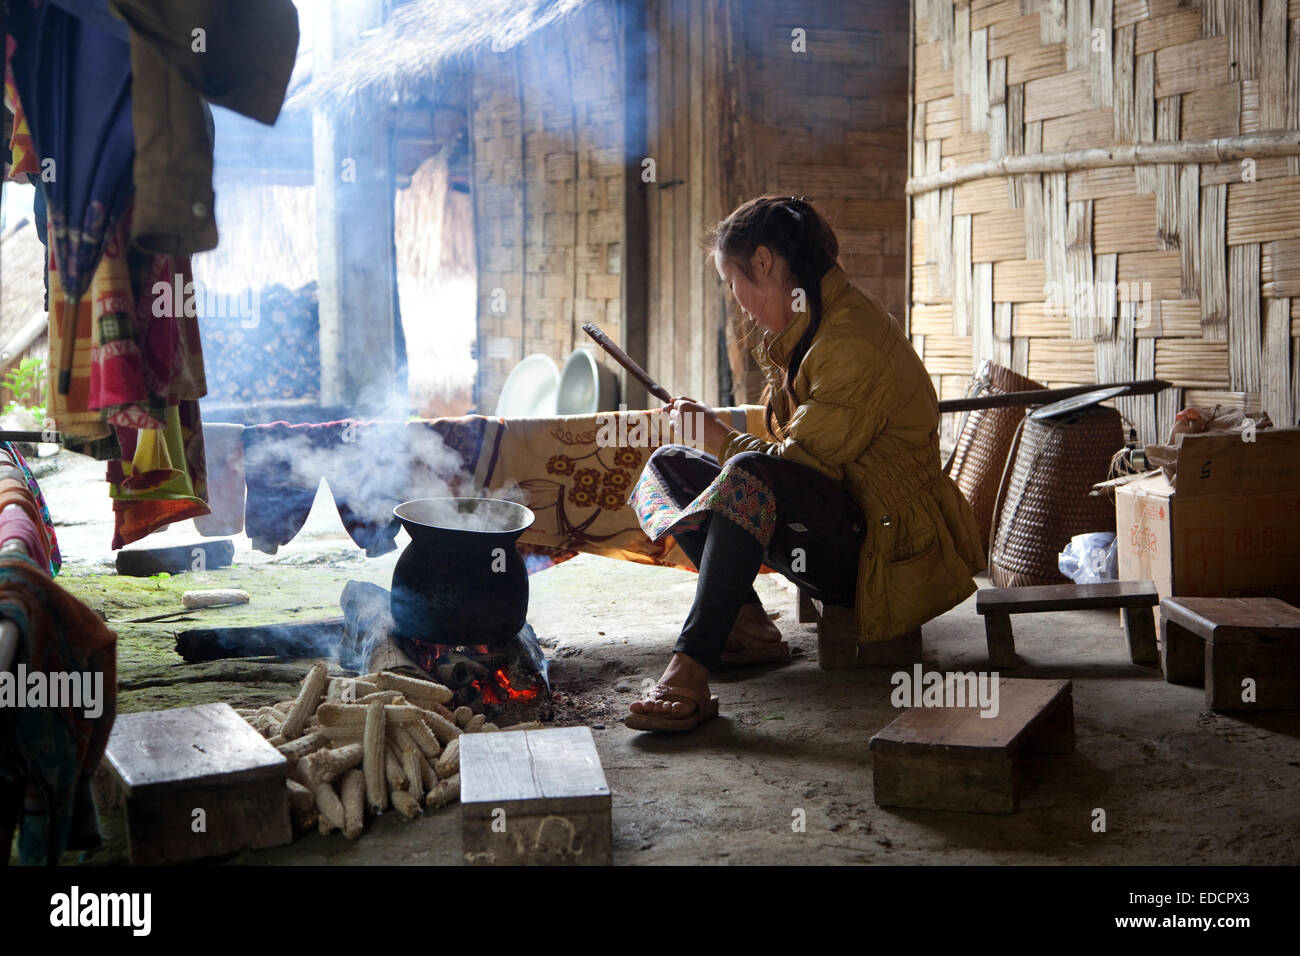 Lao woman cooking on an open fire in traditional bamboo house in rural village in Northern Laos - Stock Image